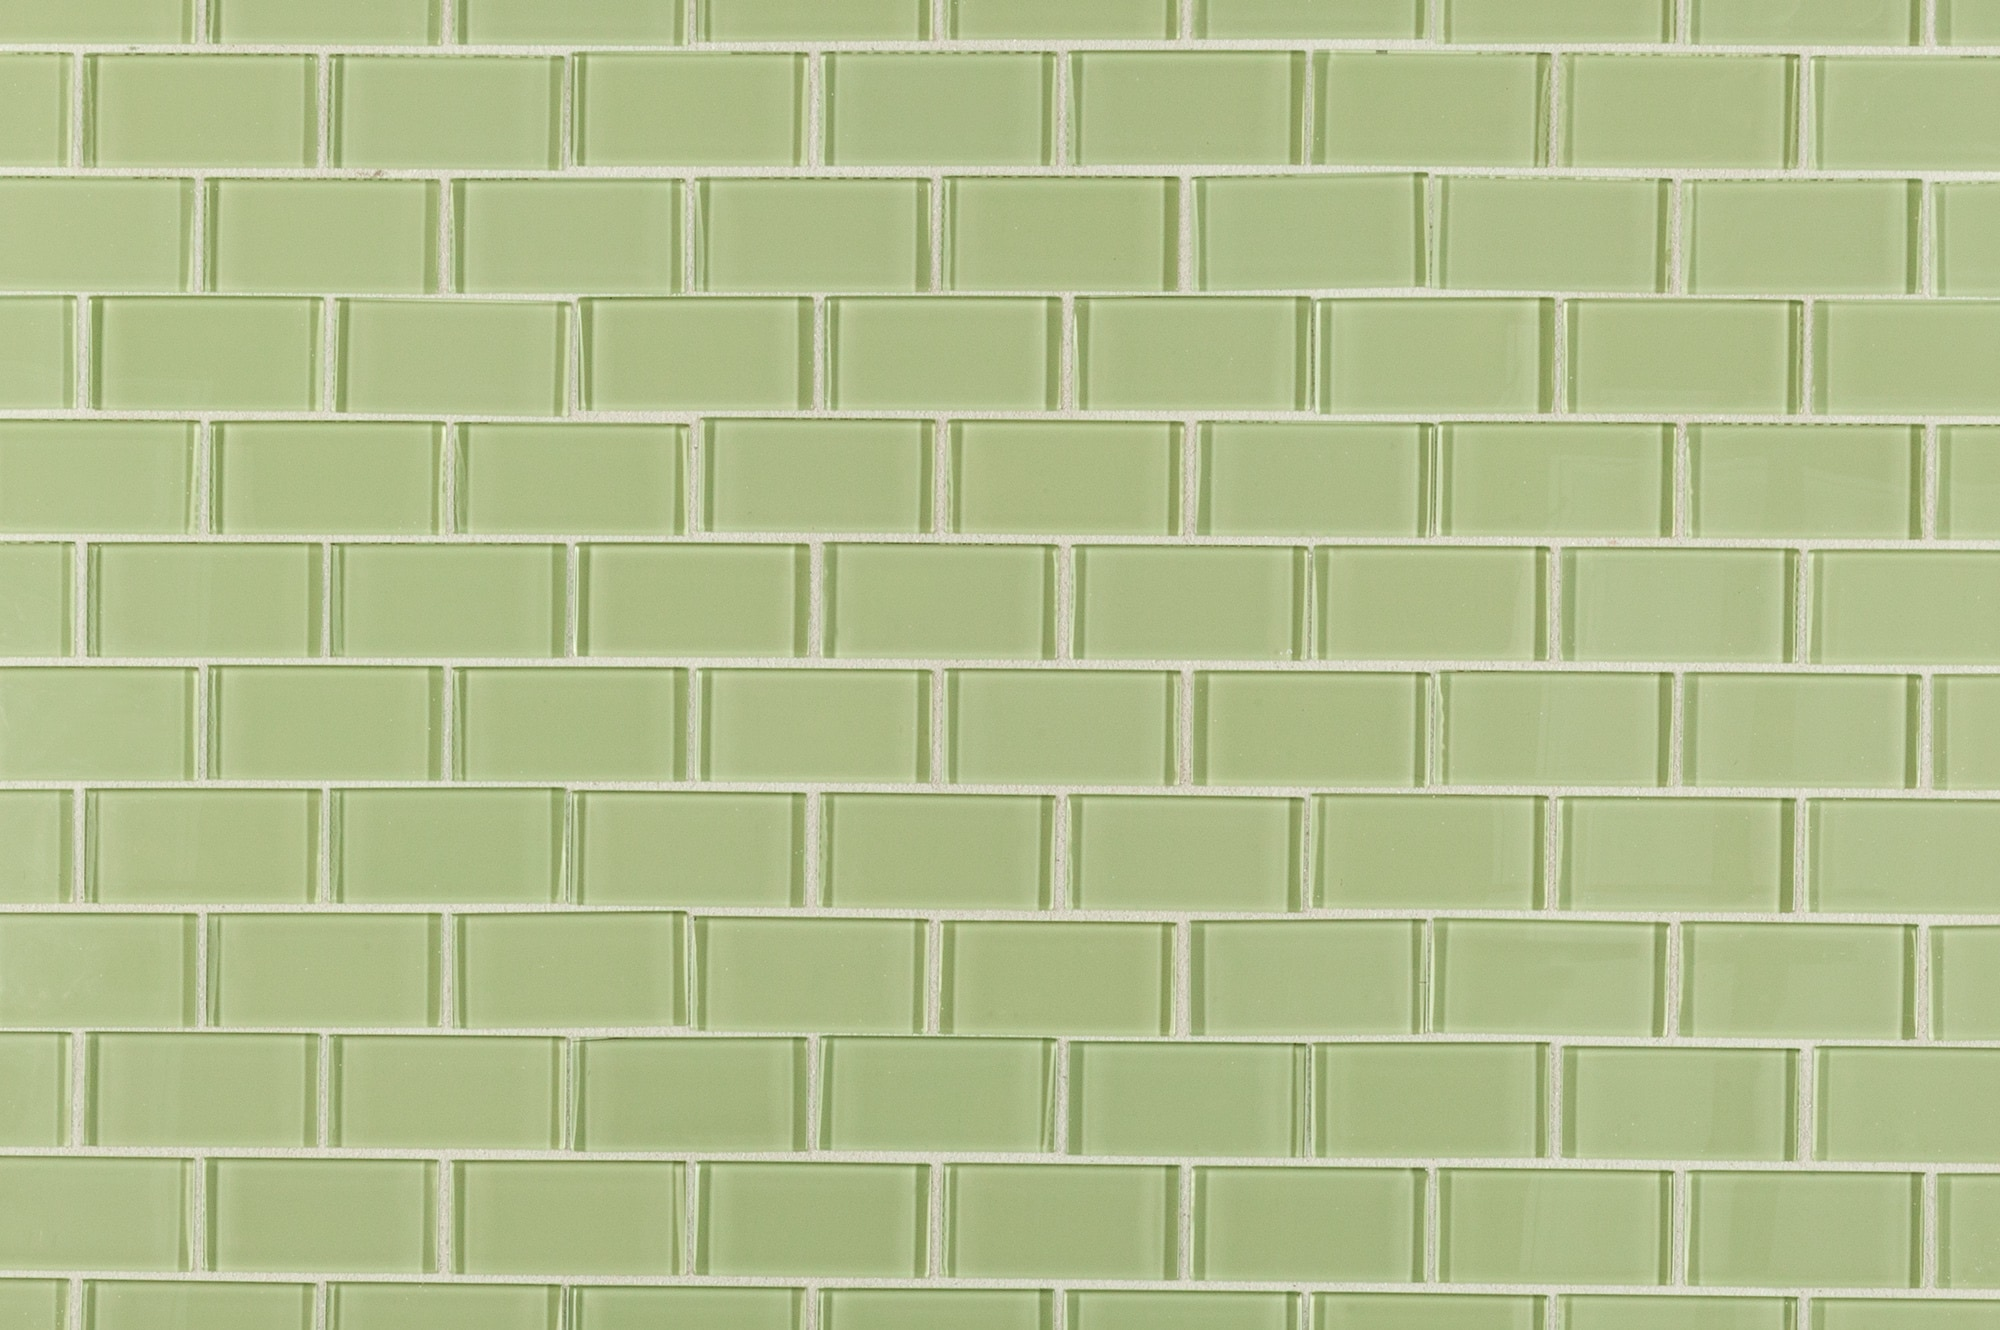 Cabot glass mosaic crystalized glass blend series mint green cabot glass mosaic crystalized glass blend series mint green subway 2x4 doublecrazyfo Image collections